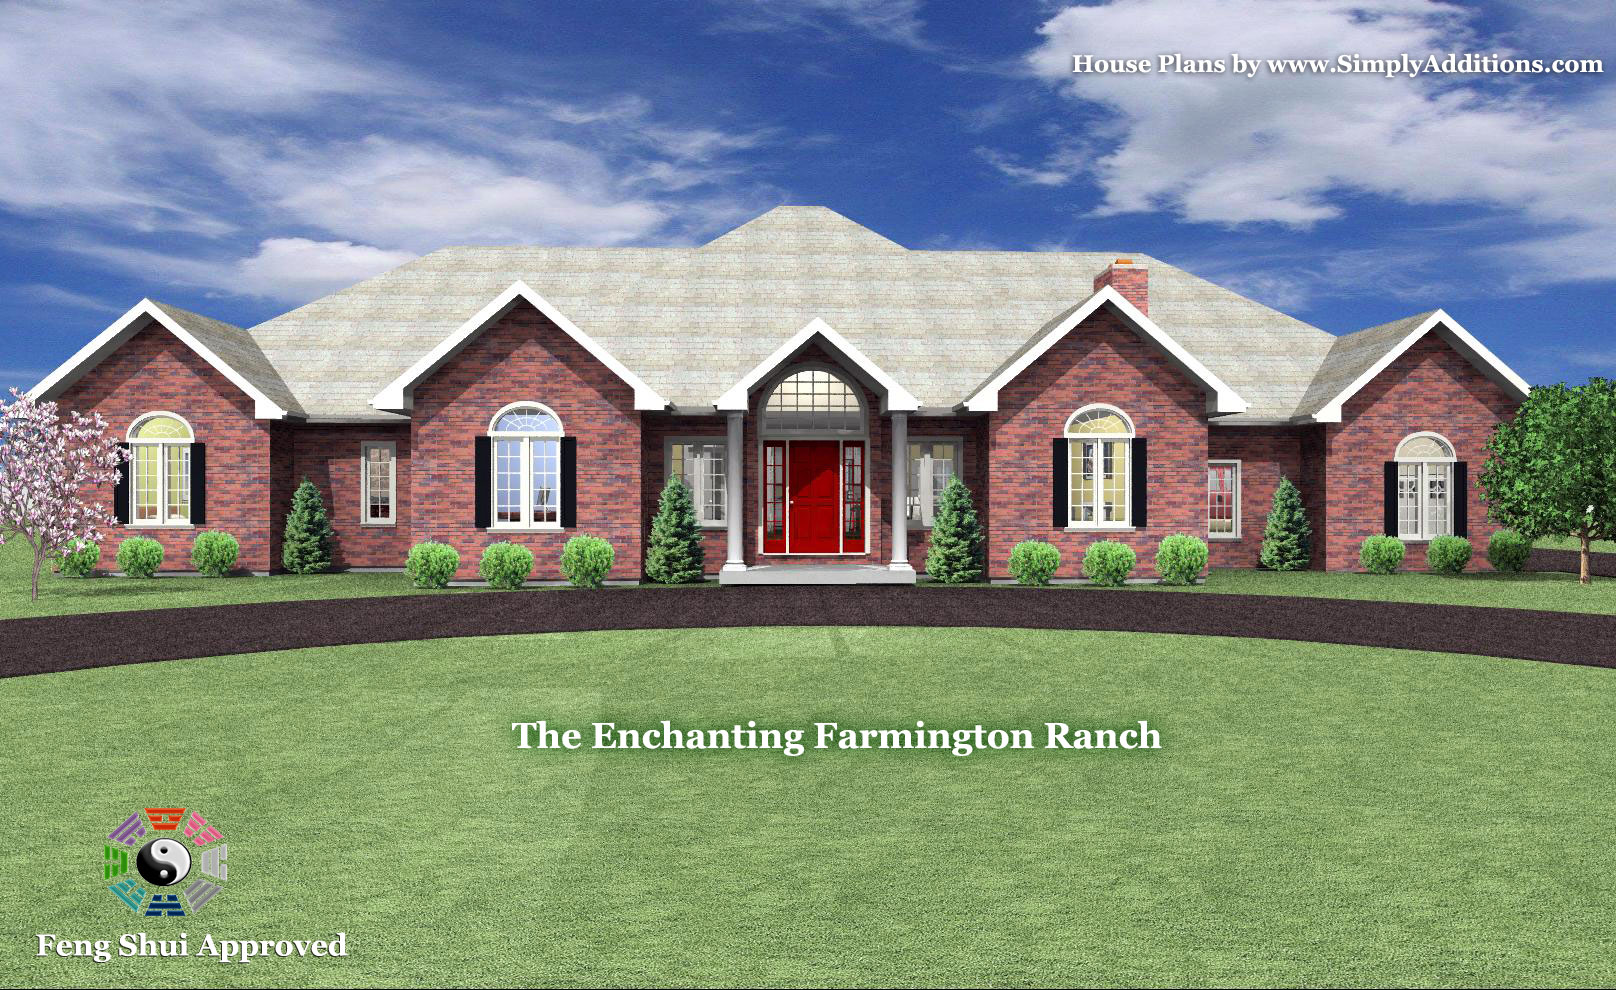 2 bedroom cottage house plans, 2 bedroom log house plans, 2 bedroom colonial house plans, 2 bedroom a frame house plans, on raised ranch house plans 2 bedroom